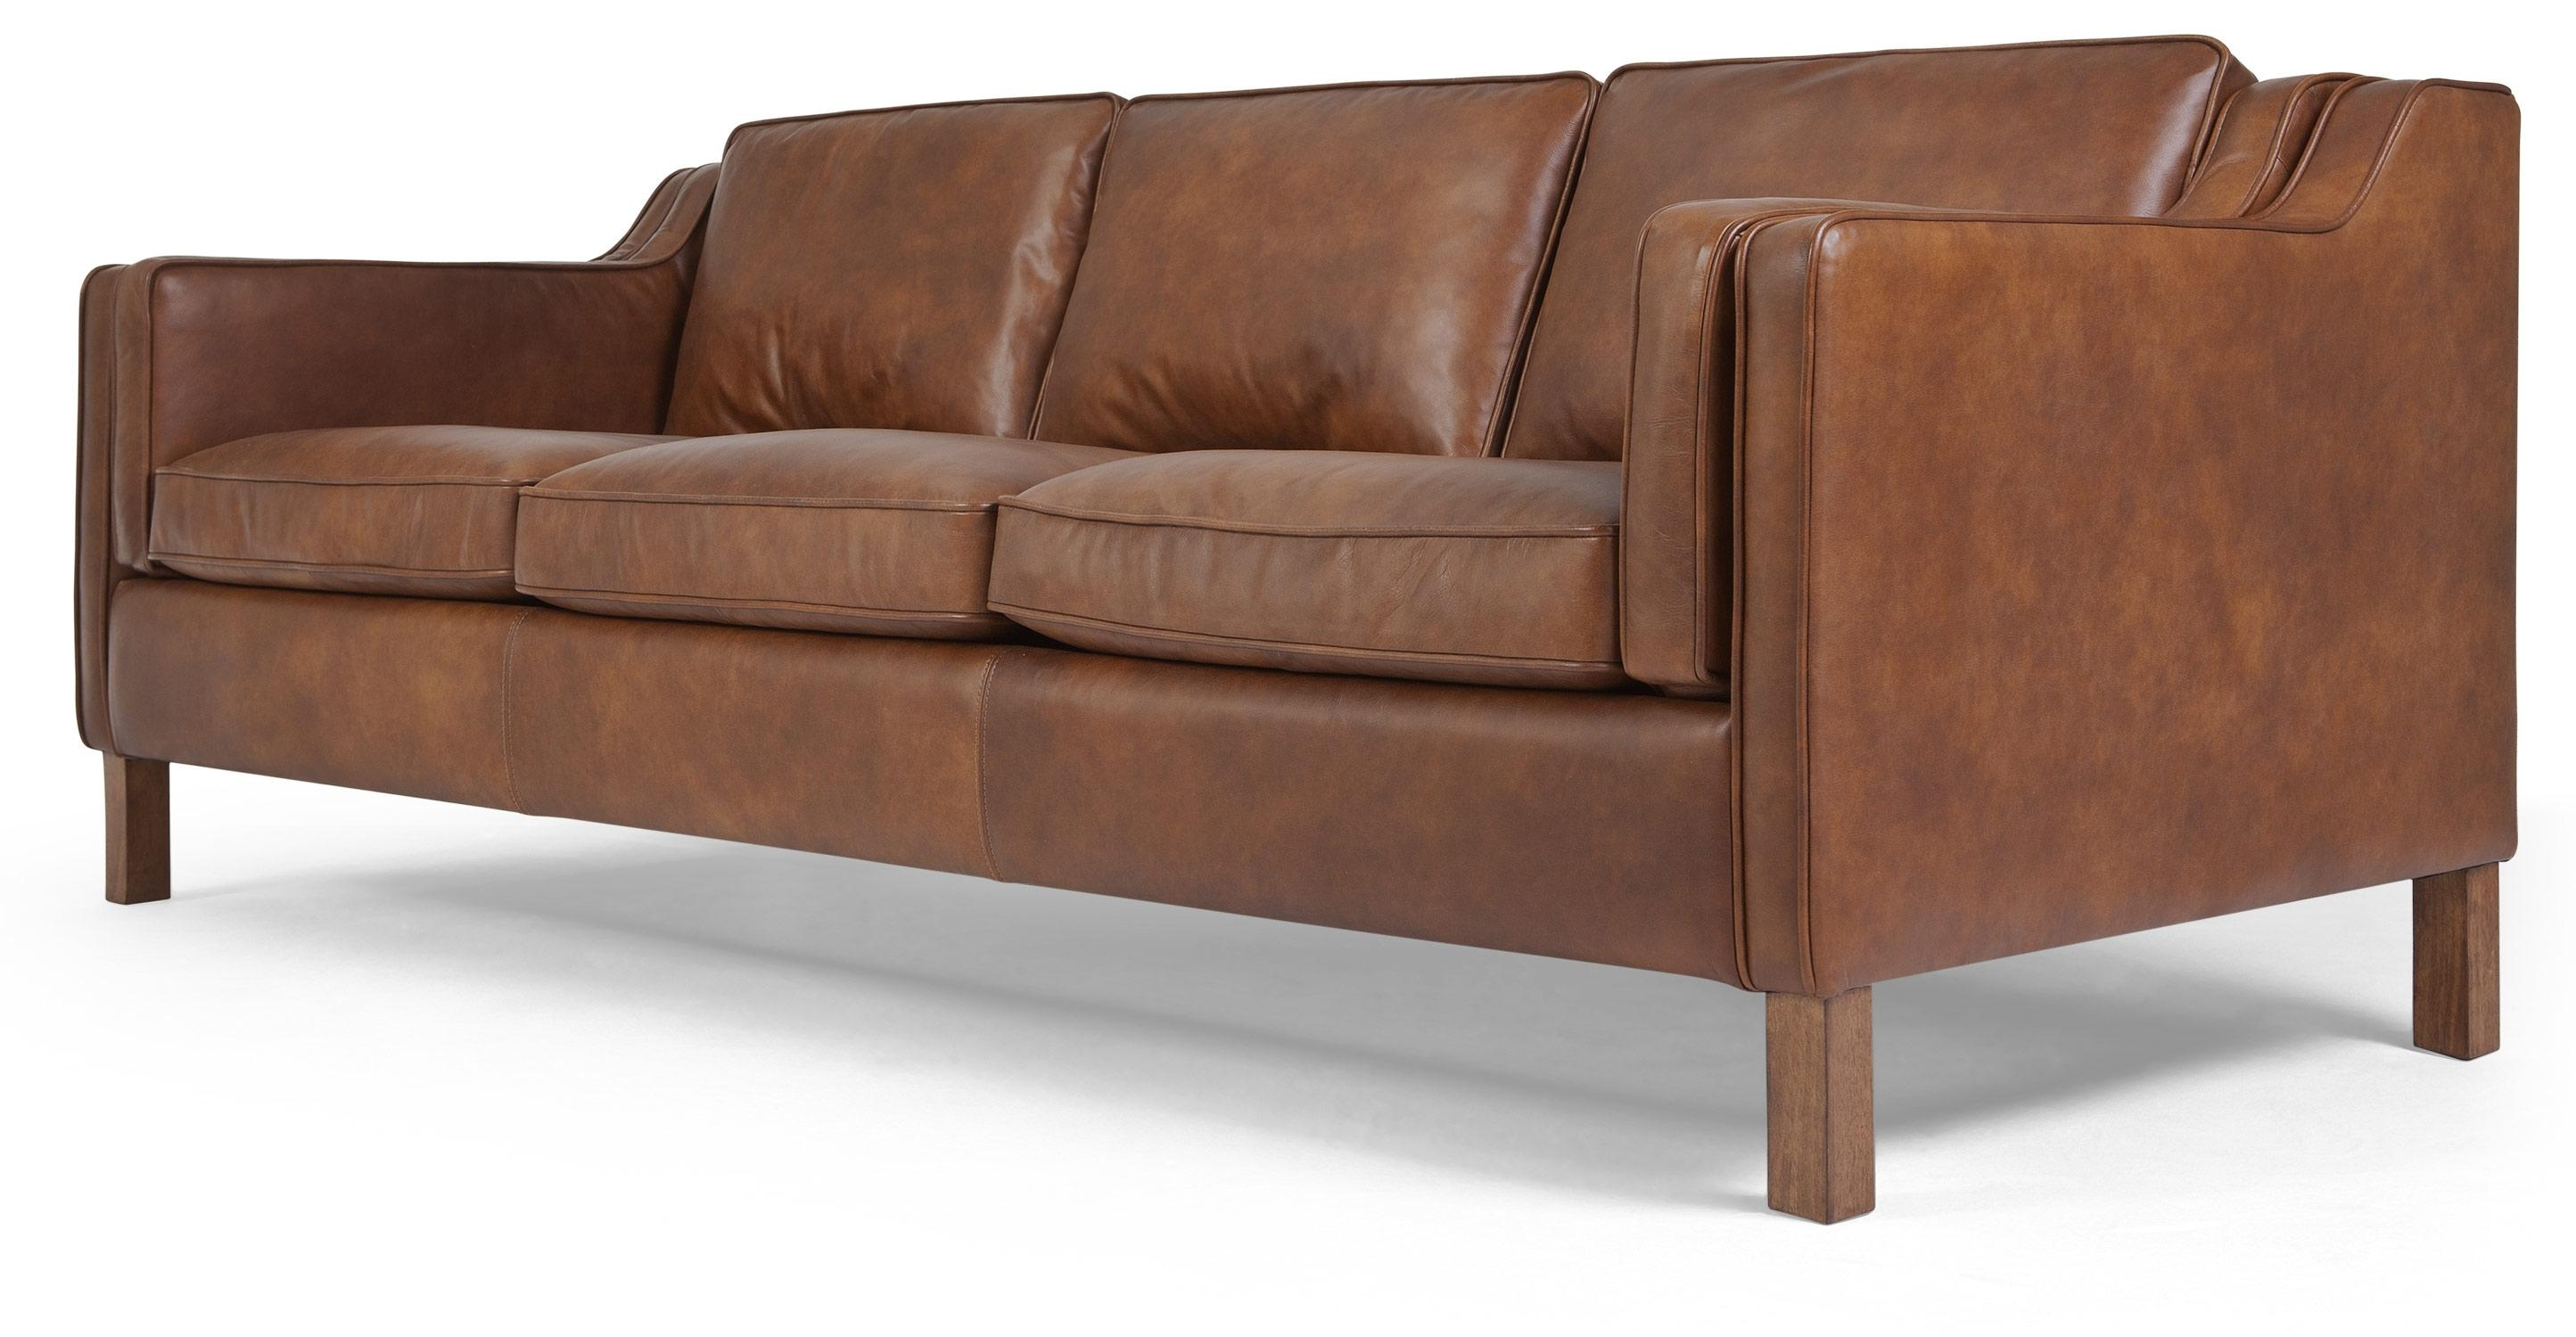 Sofas Center : Leather Lounge Tan Couch Western Light Brownlight In Light Tan Leather Sofas (Image 16 of 20)